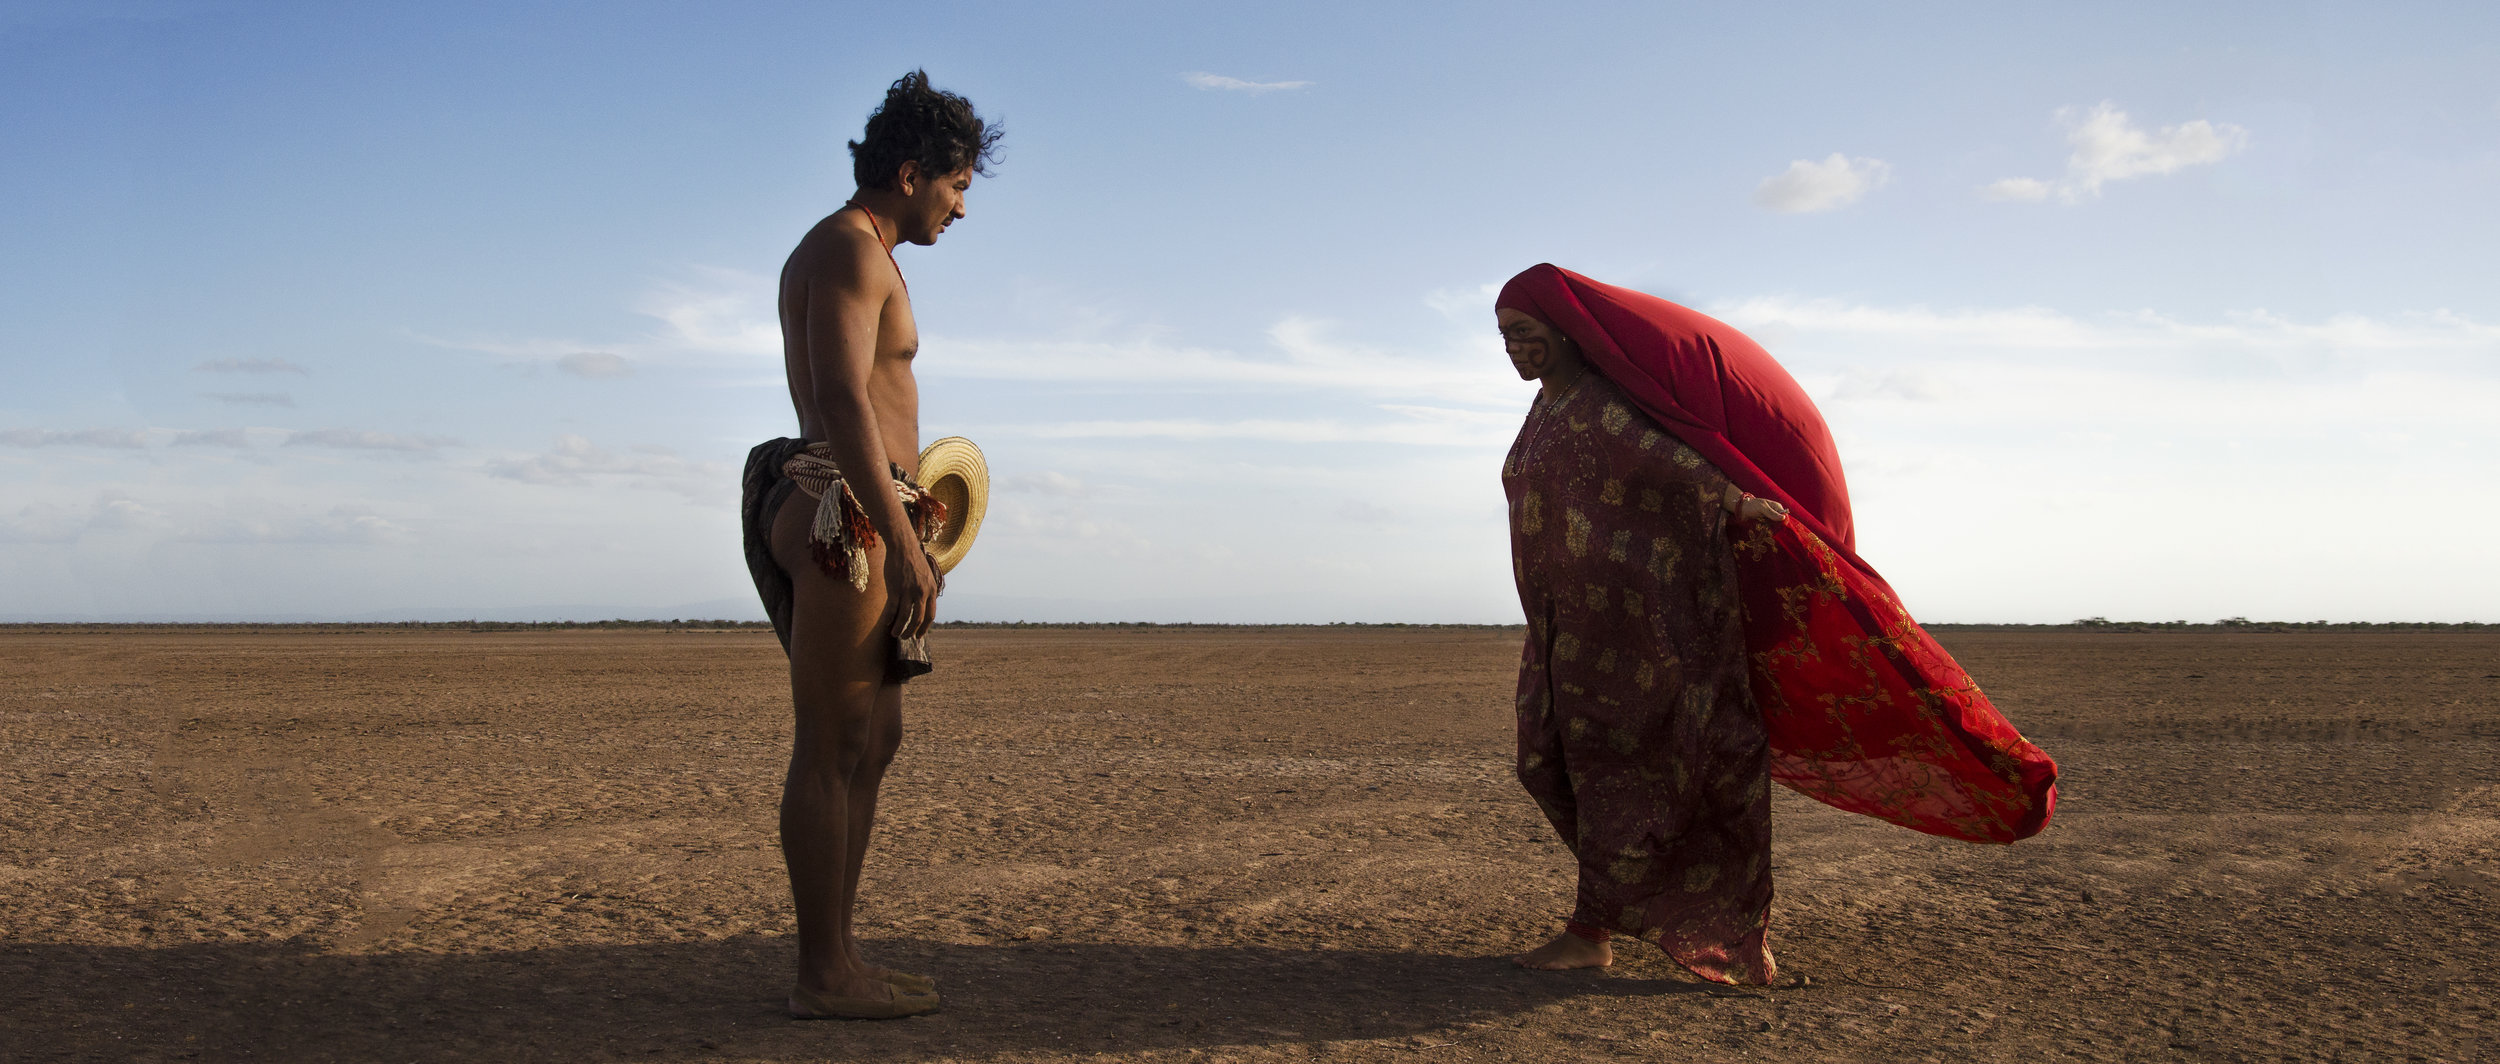 The Wayuu people and landscapes star in  Birds of Passage.